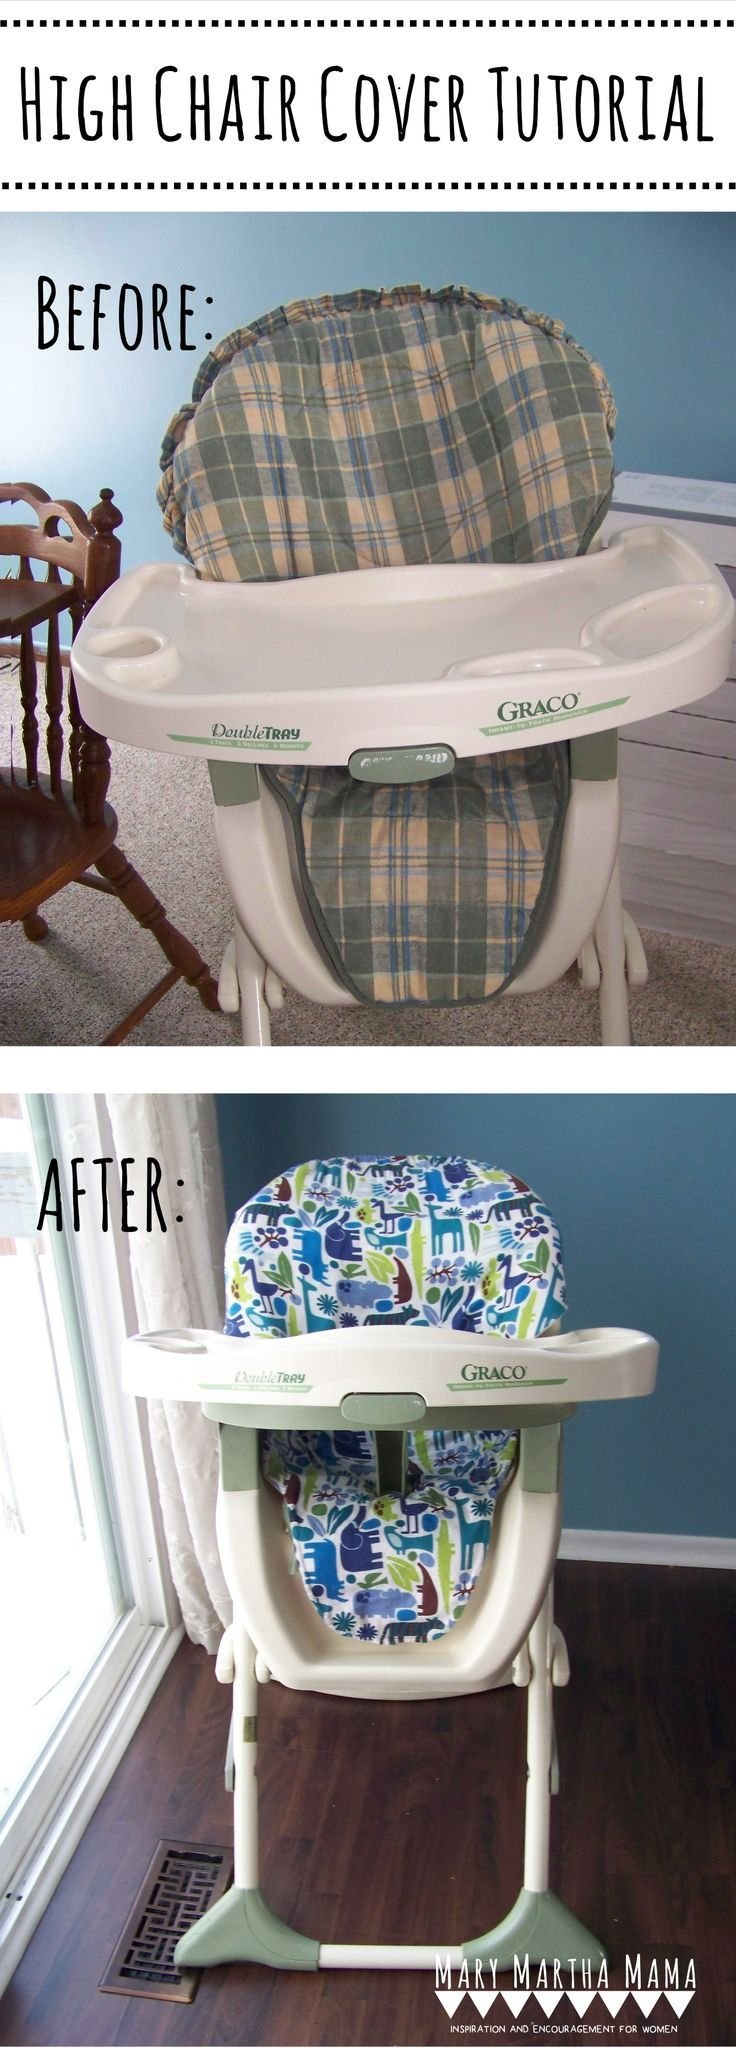 DIY High Chair Cover Tutorial- I bought an old high chair at a yard sale and made a new cover for it- This step by step tutorial with pictures shows how I did it.